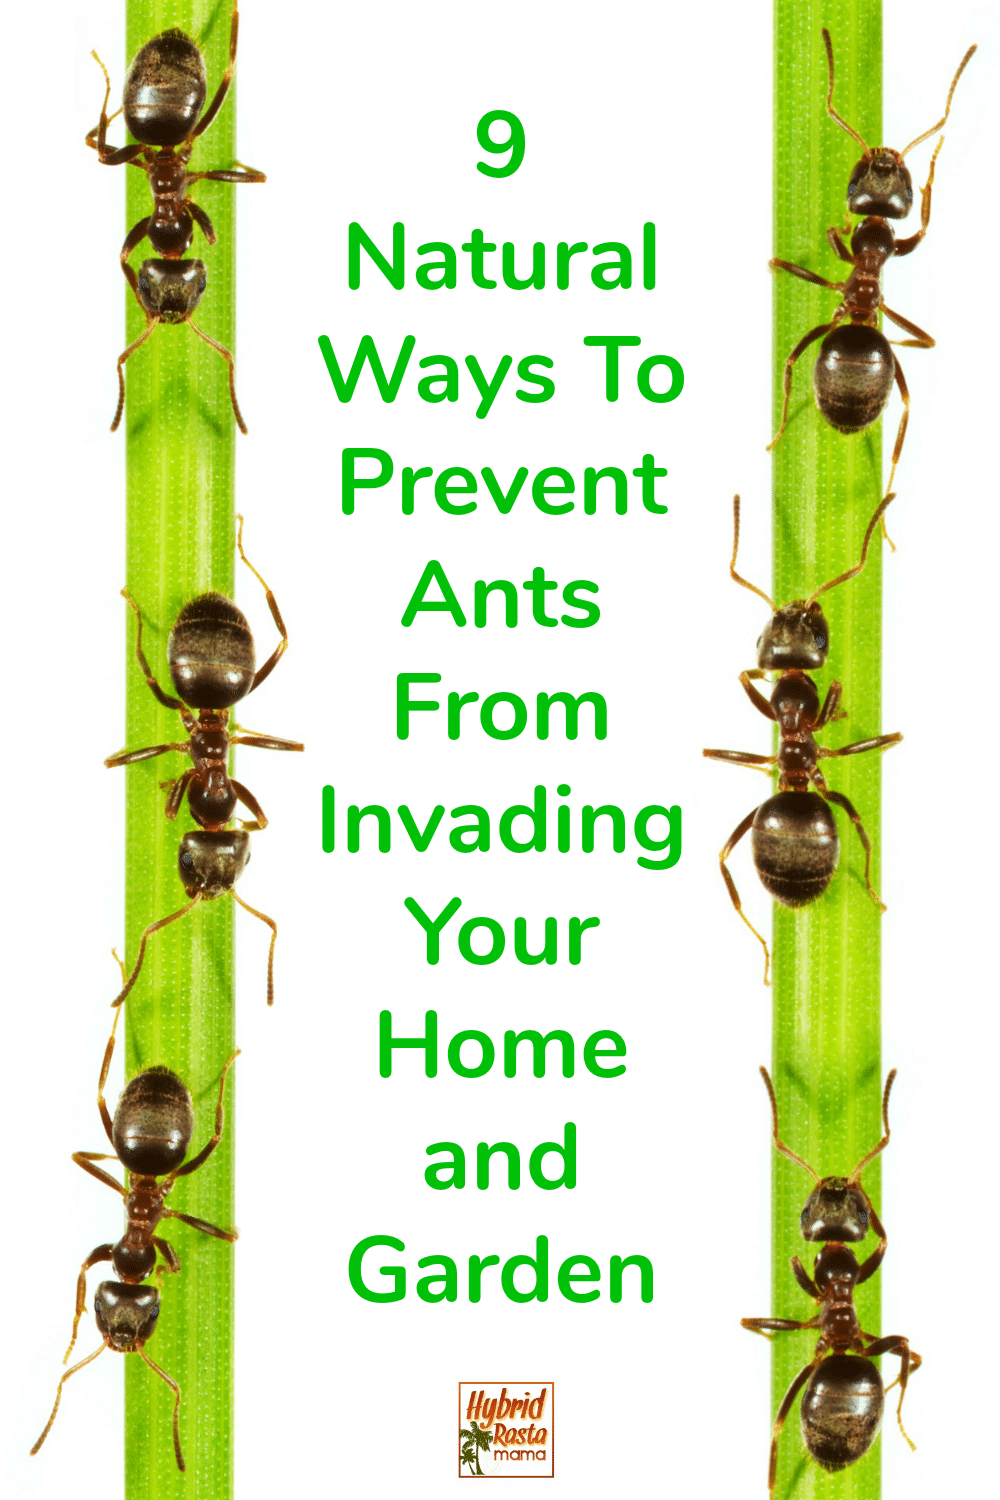 Ants invading a bamboo tree with the words 9 natural ways to prevent ants written in green.